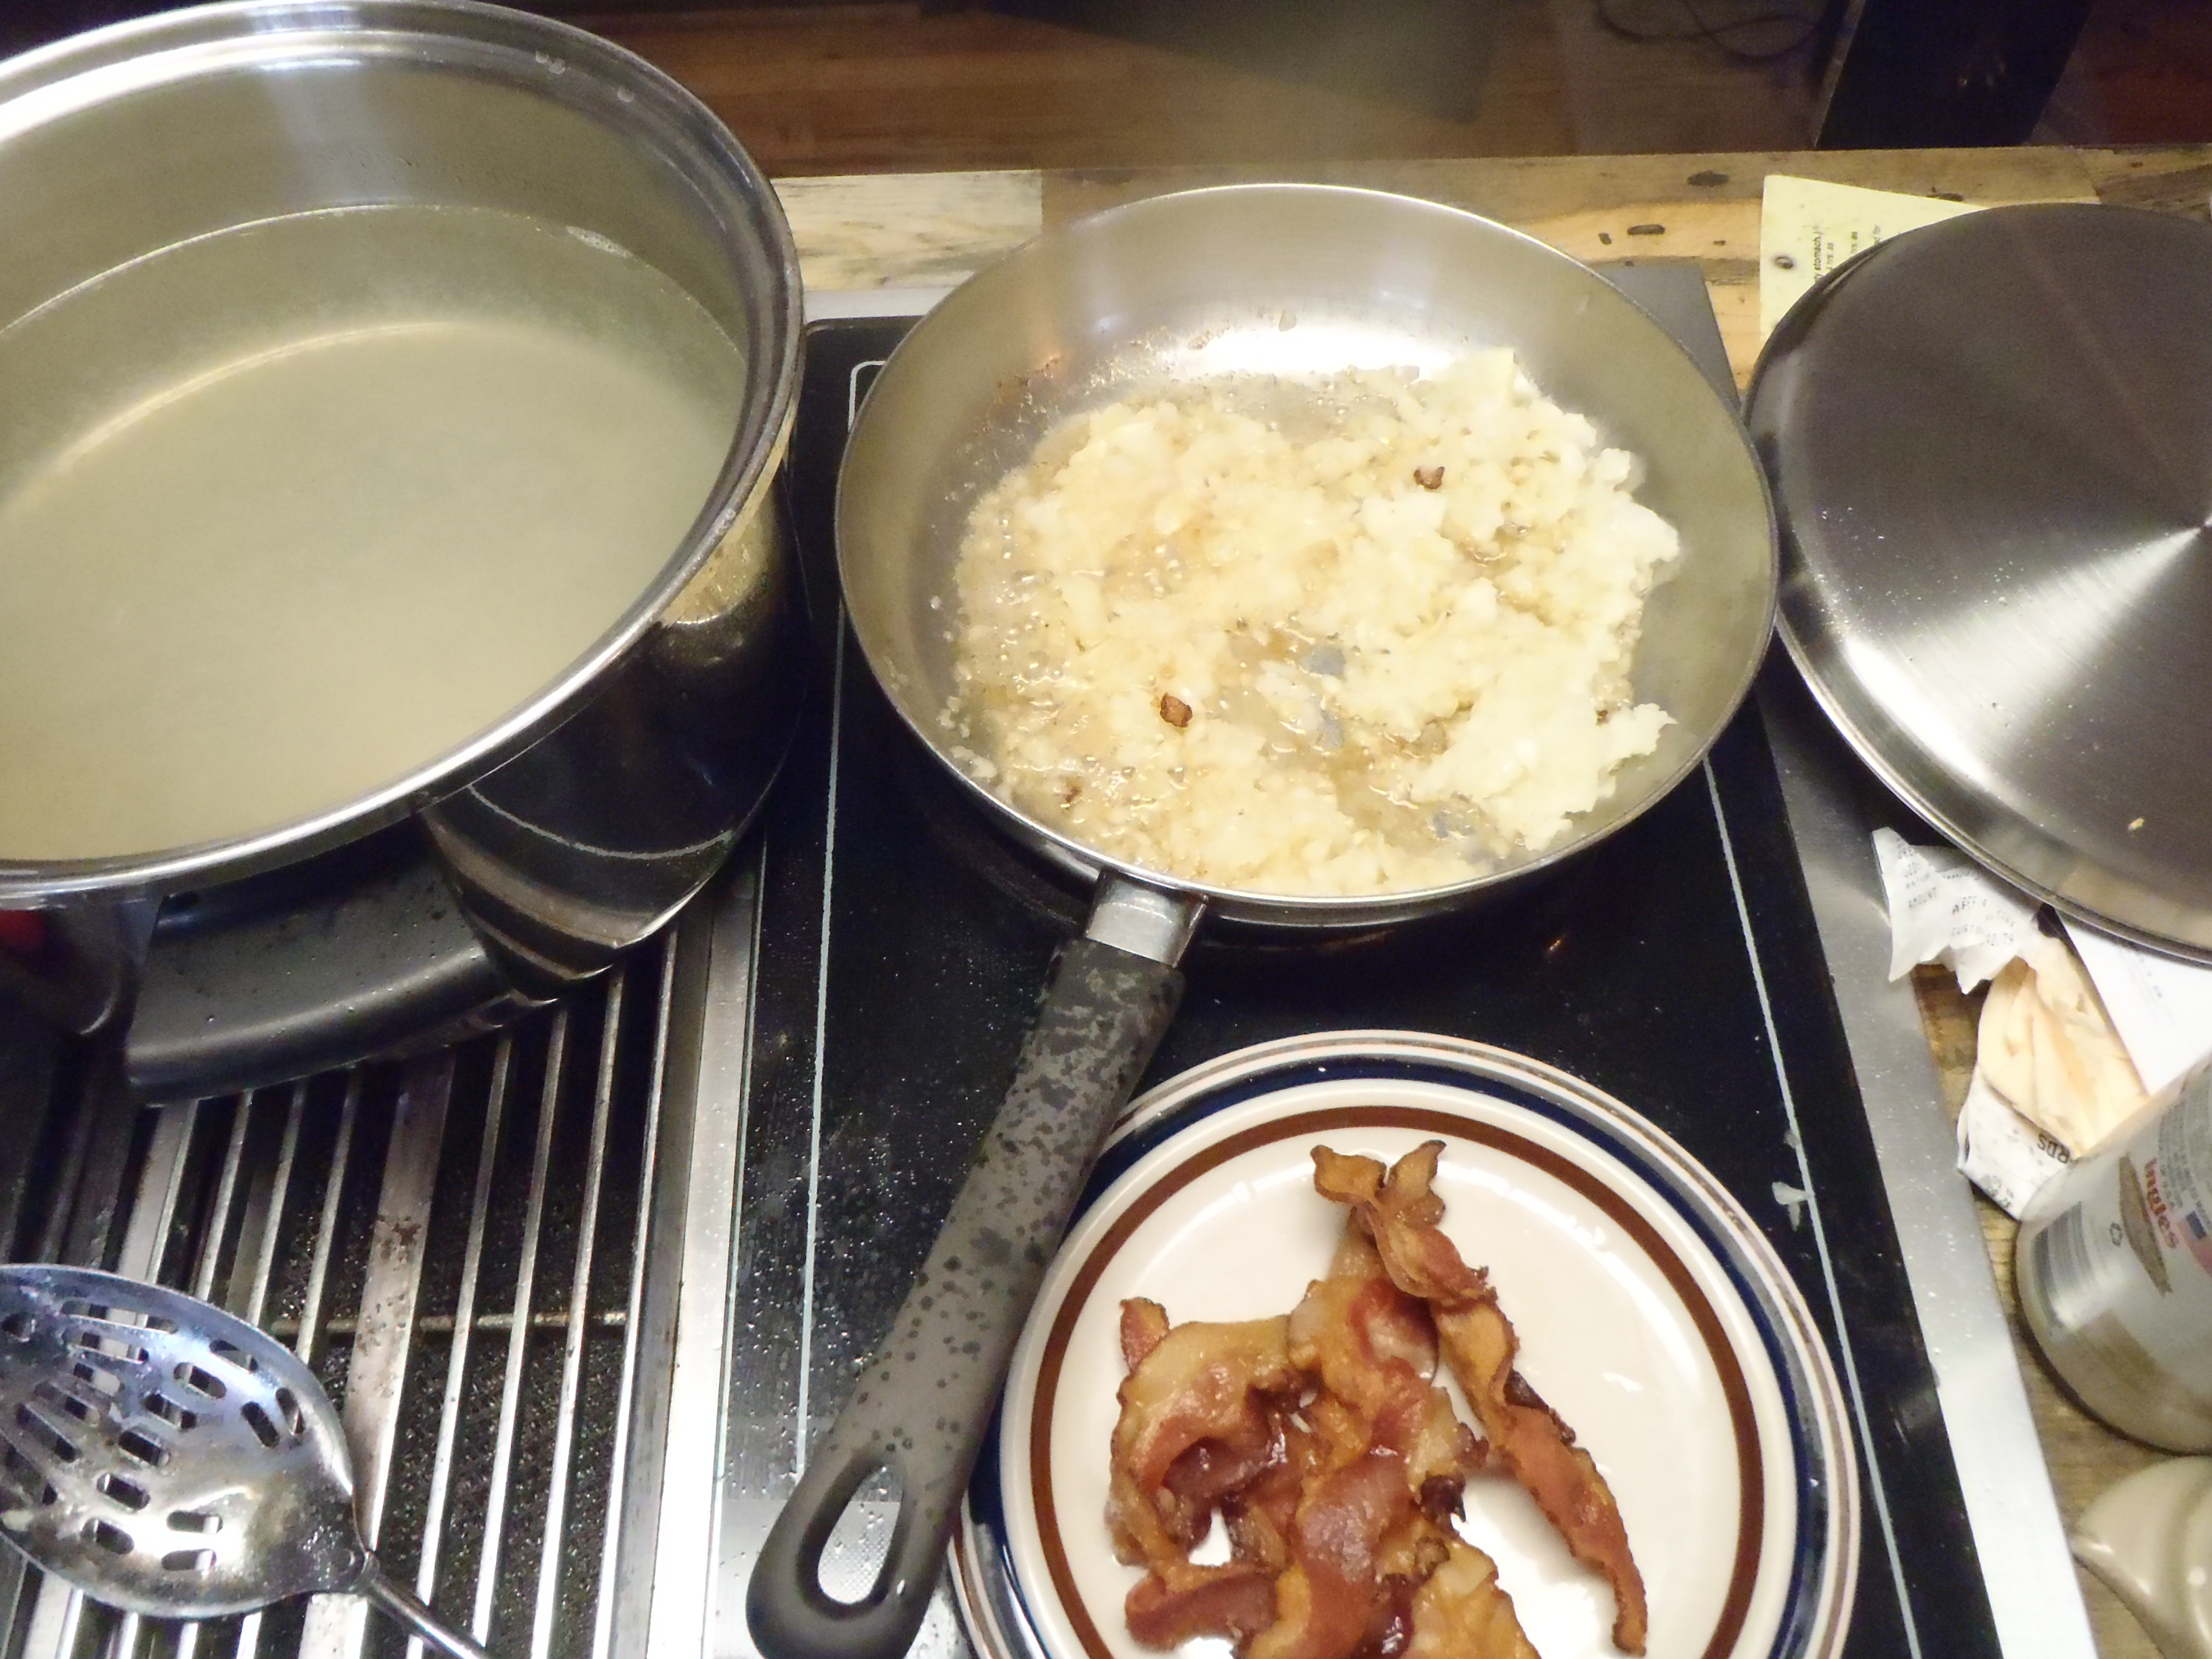 Saute onions in bacon grease